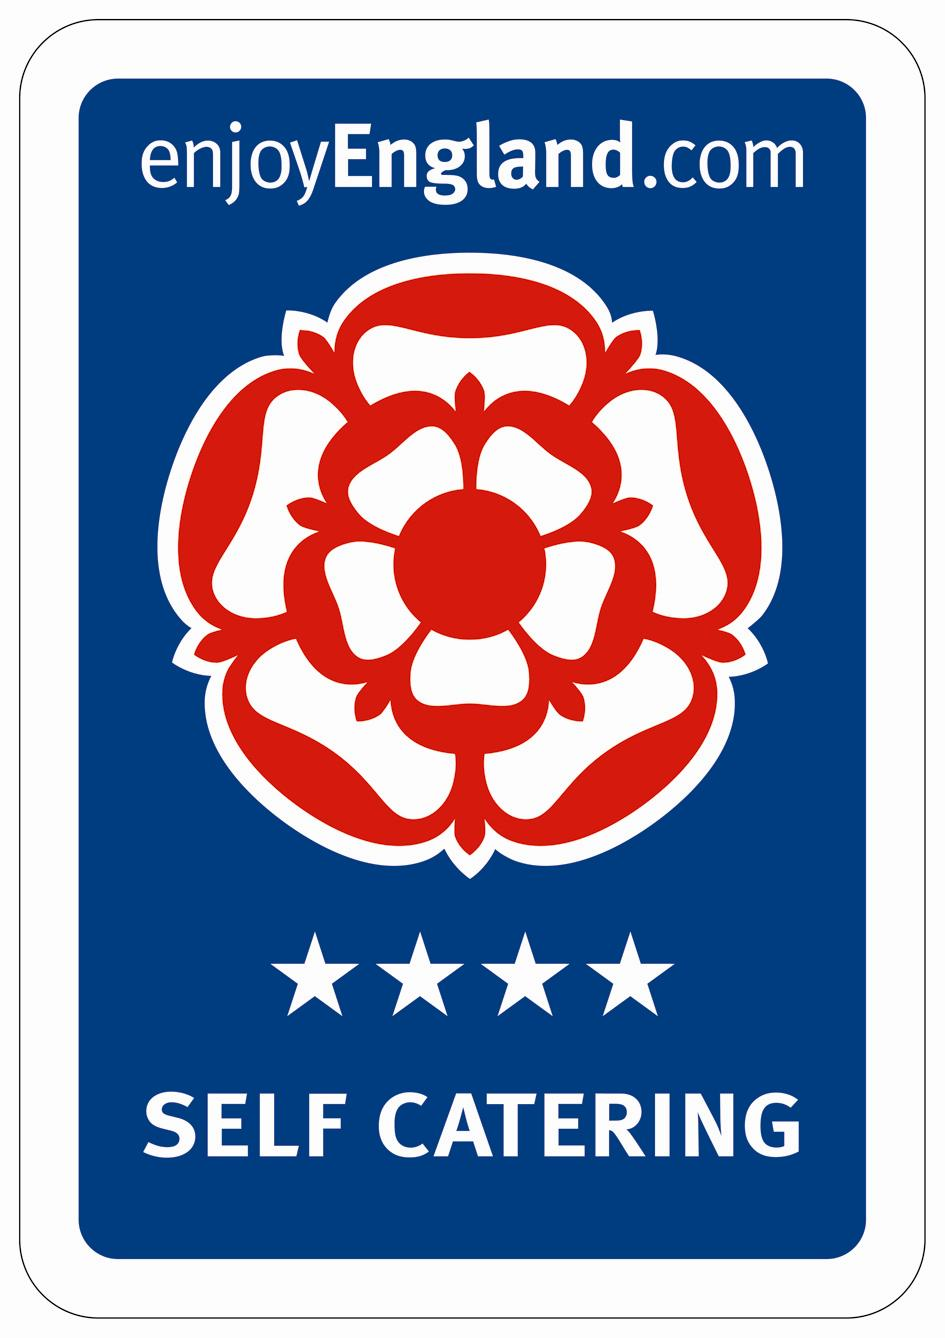 Four star self catering